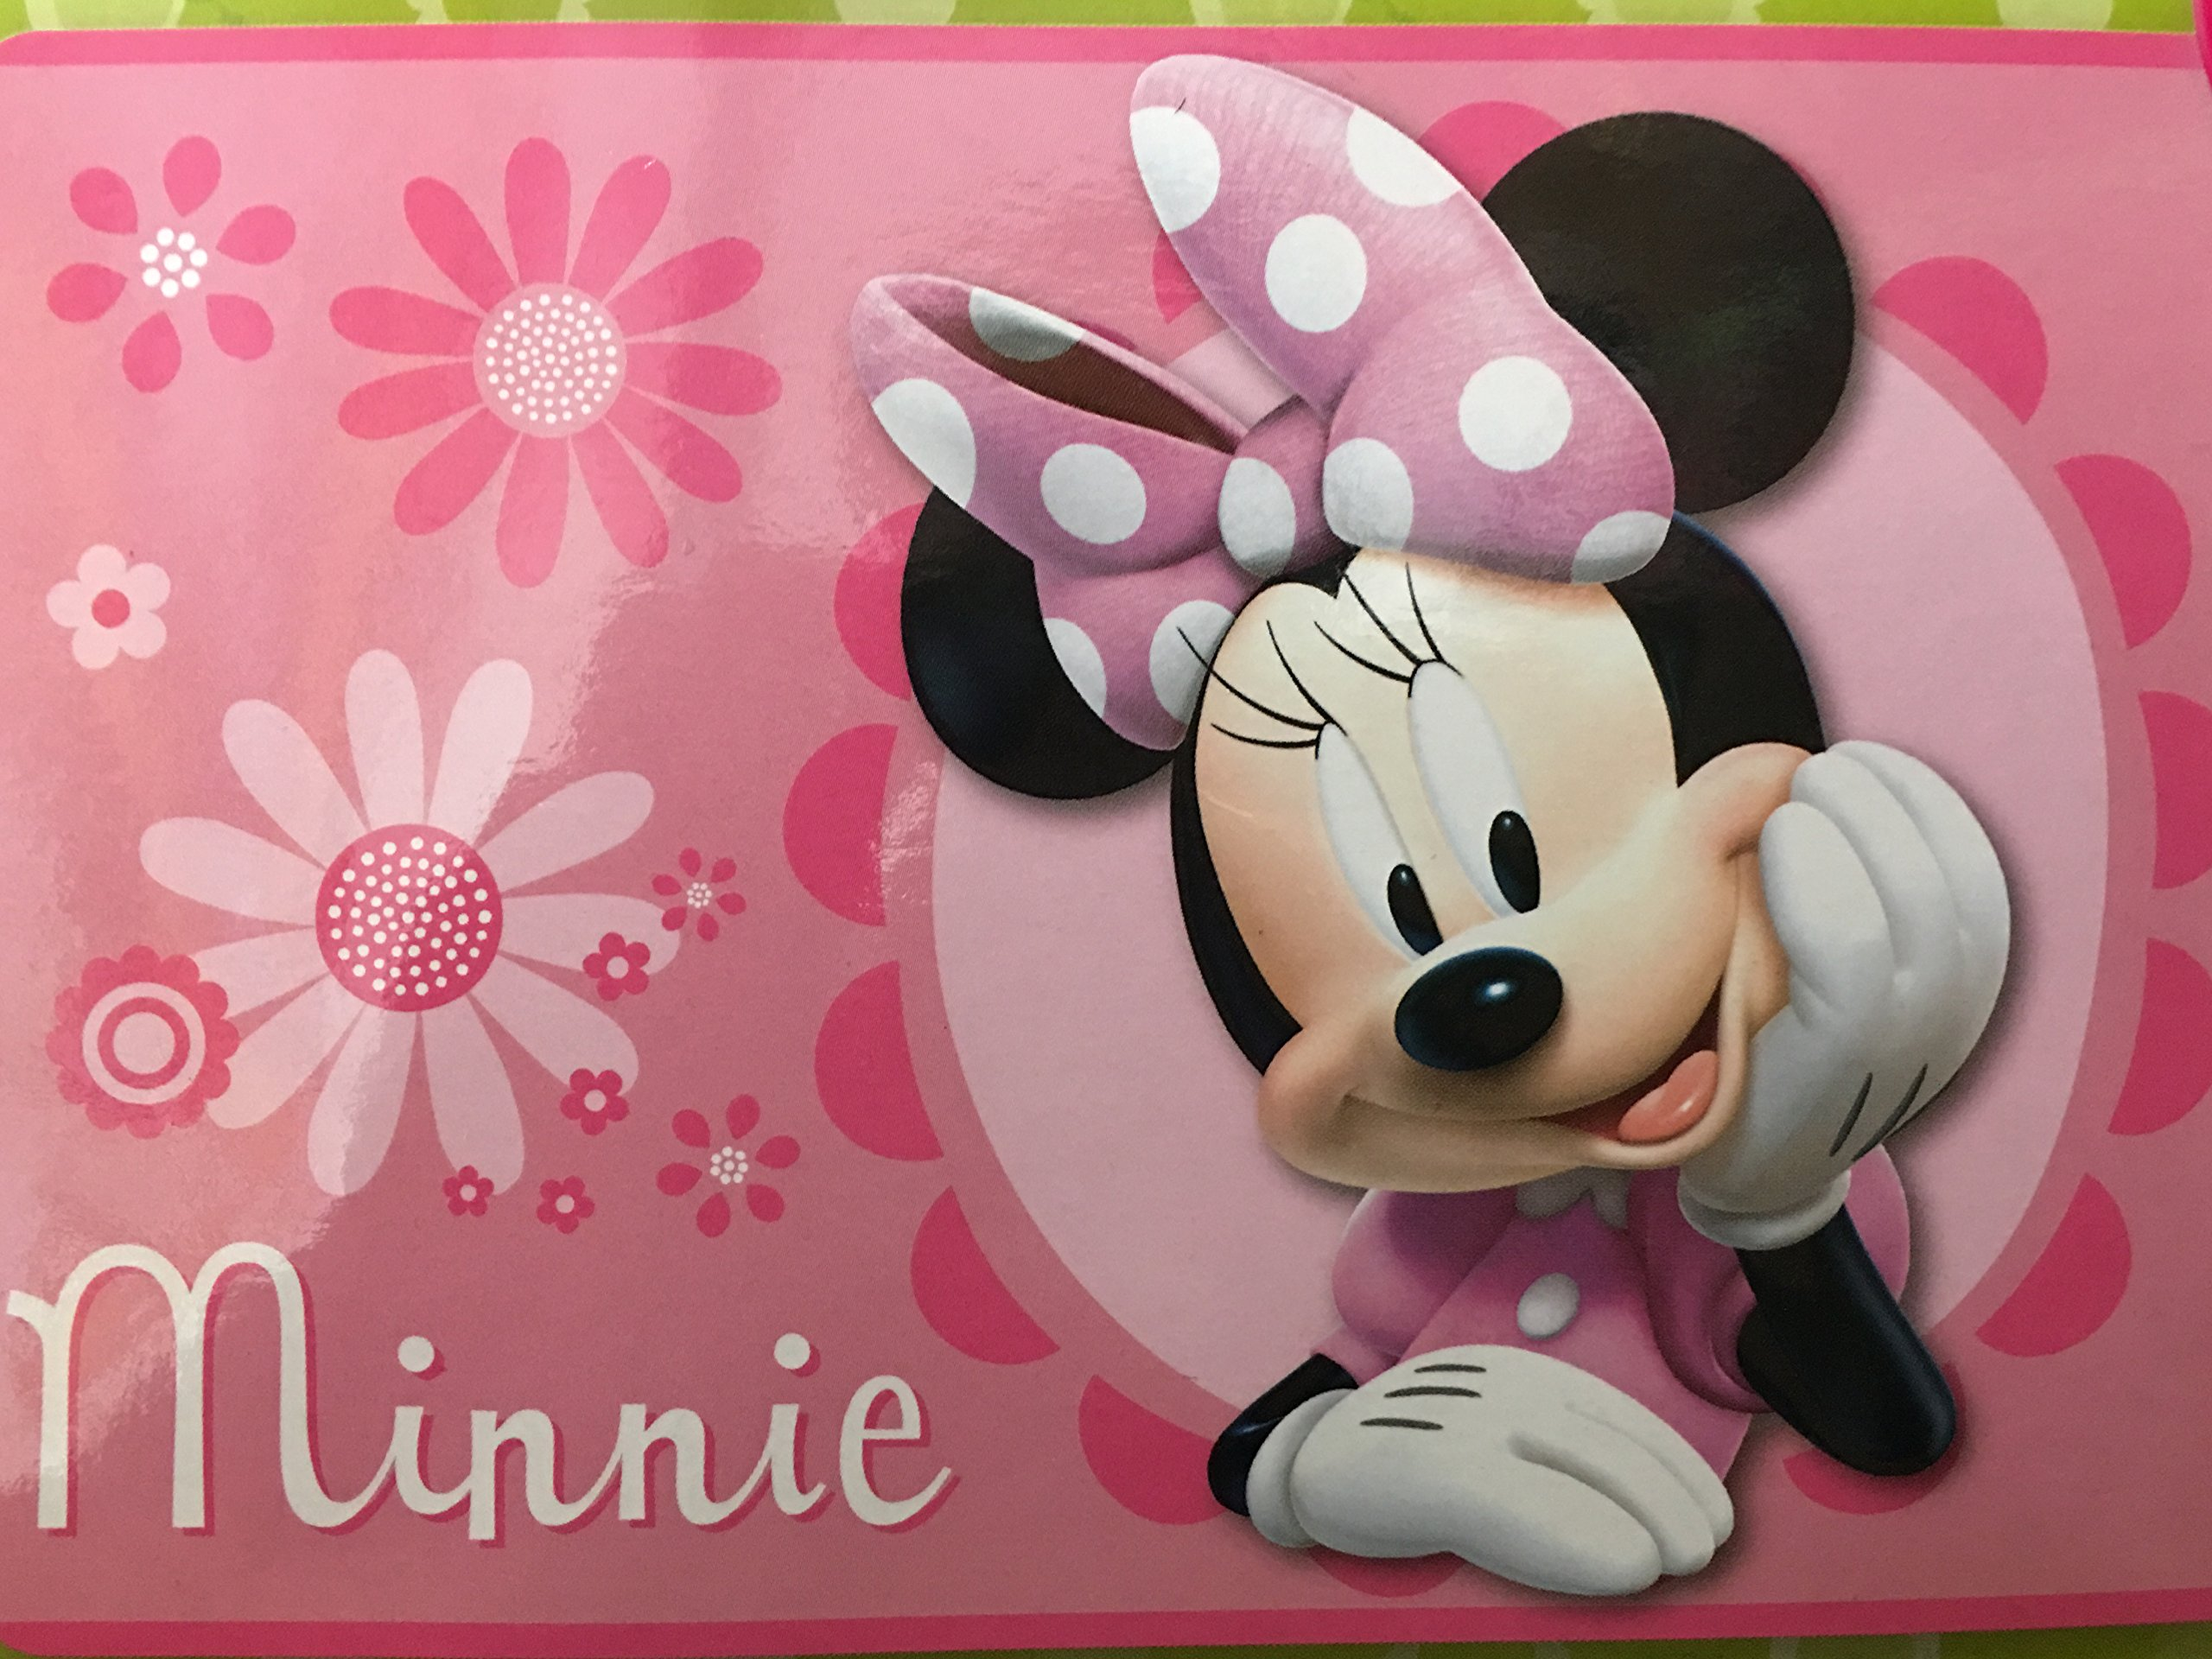 Disney All New Marvel 54'' x 80'' Super Soft Area Rug with Non Slip Backing (Minnie)